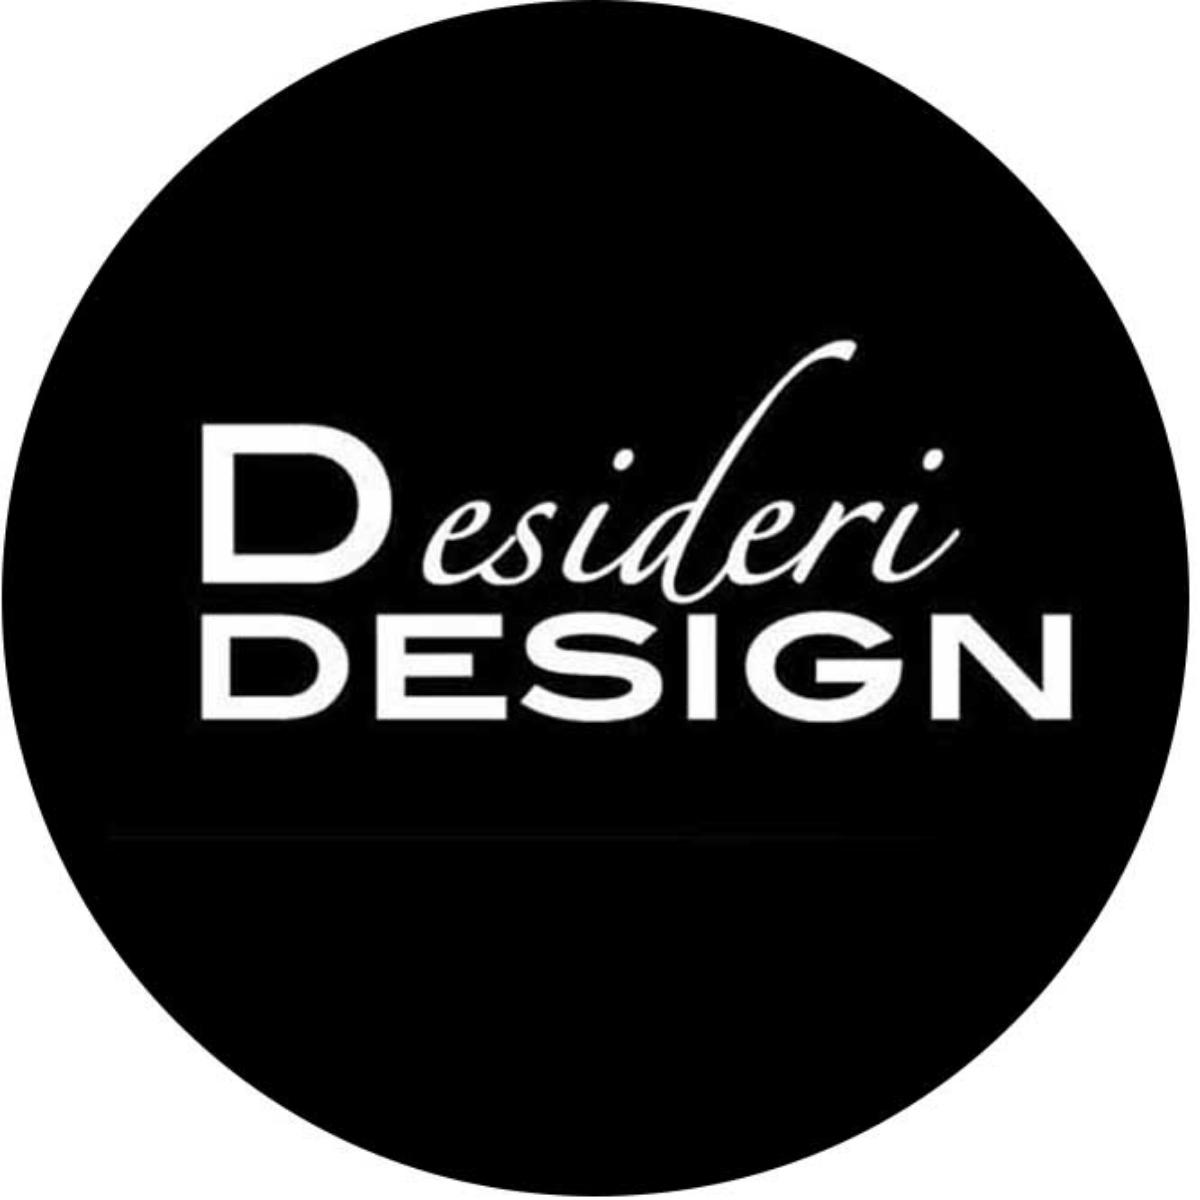 Desideri Design - Crafted Jewelry